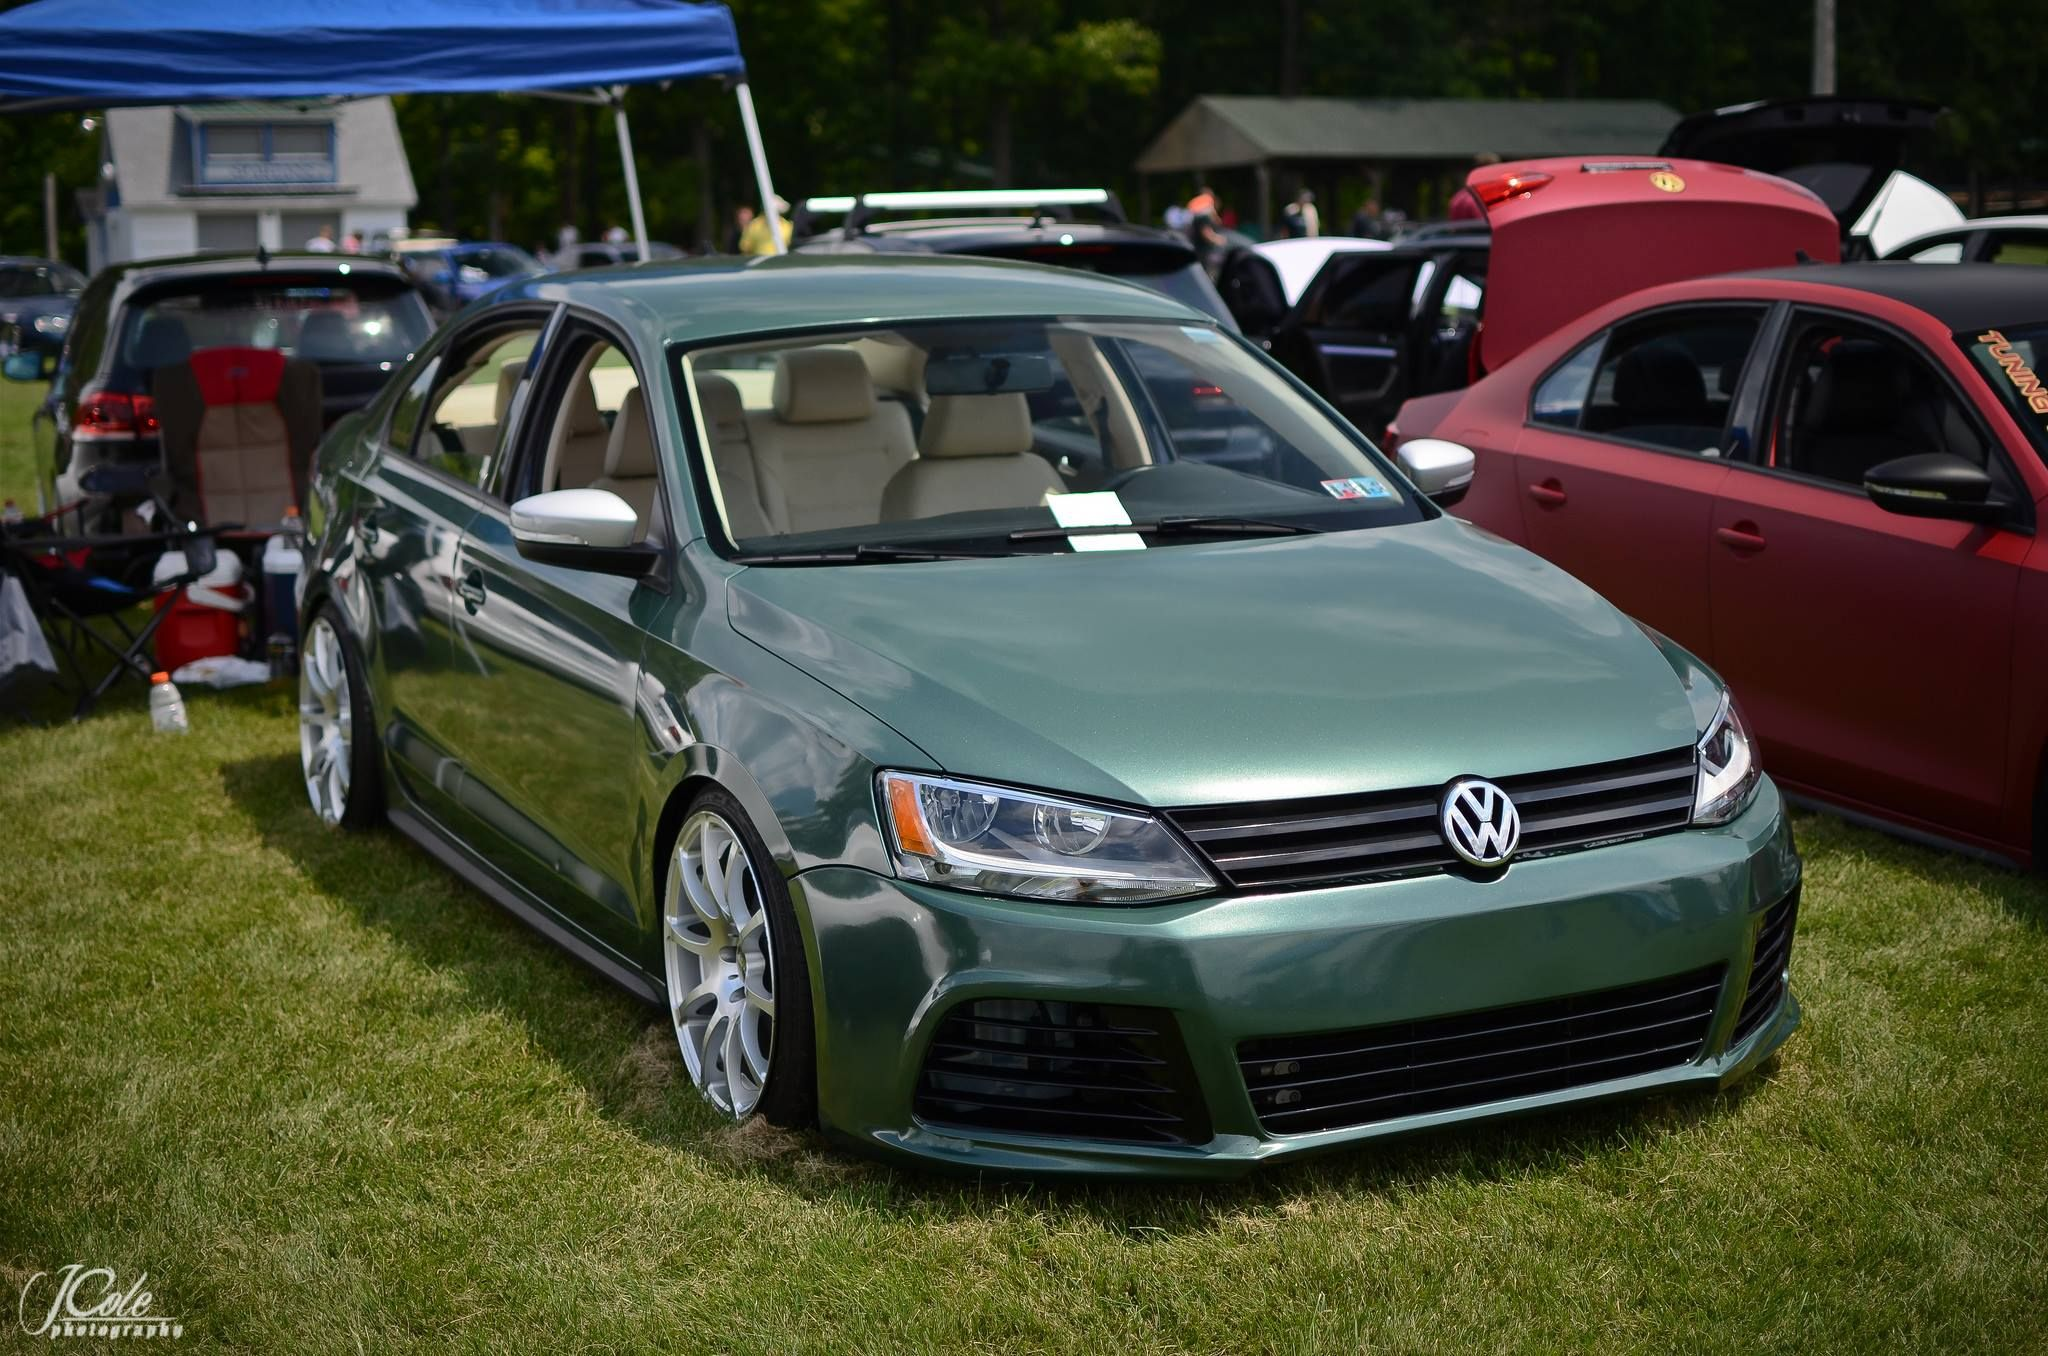 cc959a37469fdbc206c96e92dffdda2d Cool Review About Vw Jetta 2.5 with Inspiring Images Cars Review